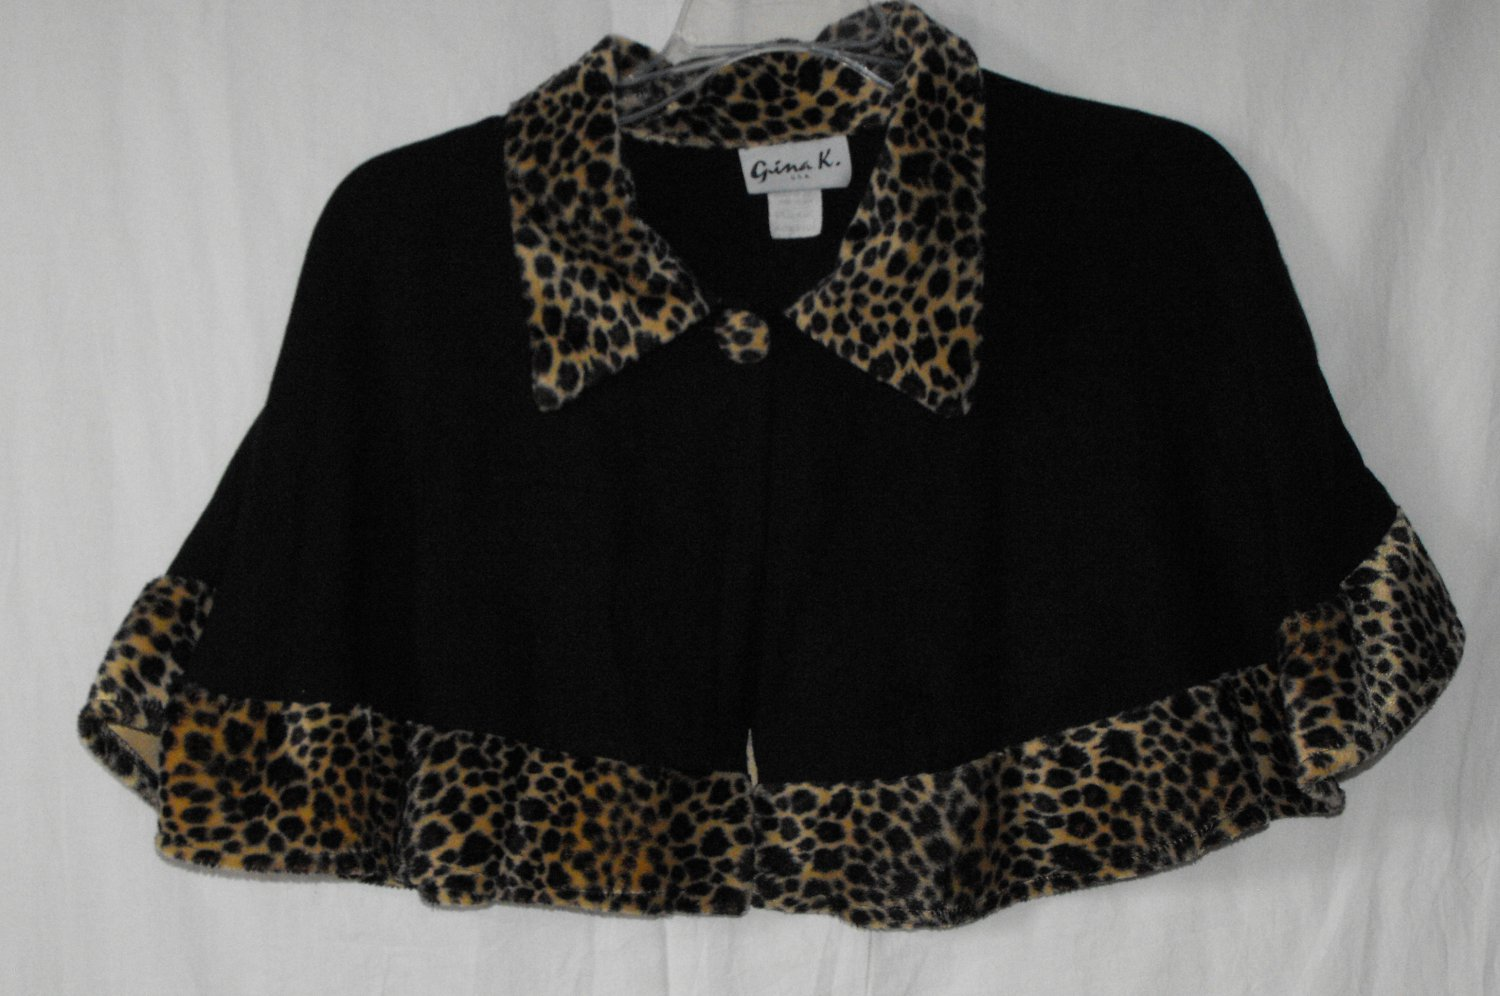 *SOLD~Gina K. U.S.A. Girls Size M-Medium Leopard Print Shrug Halloween Costume?